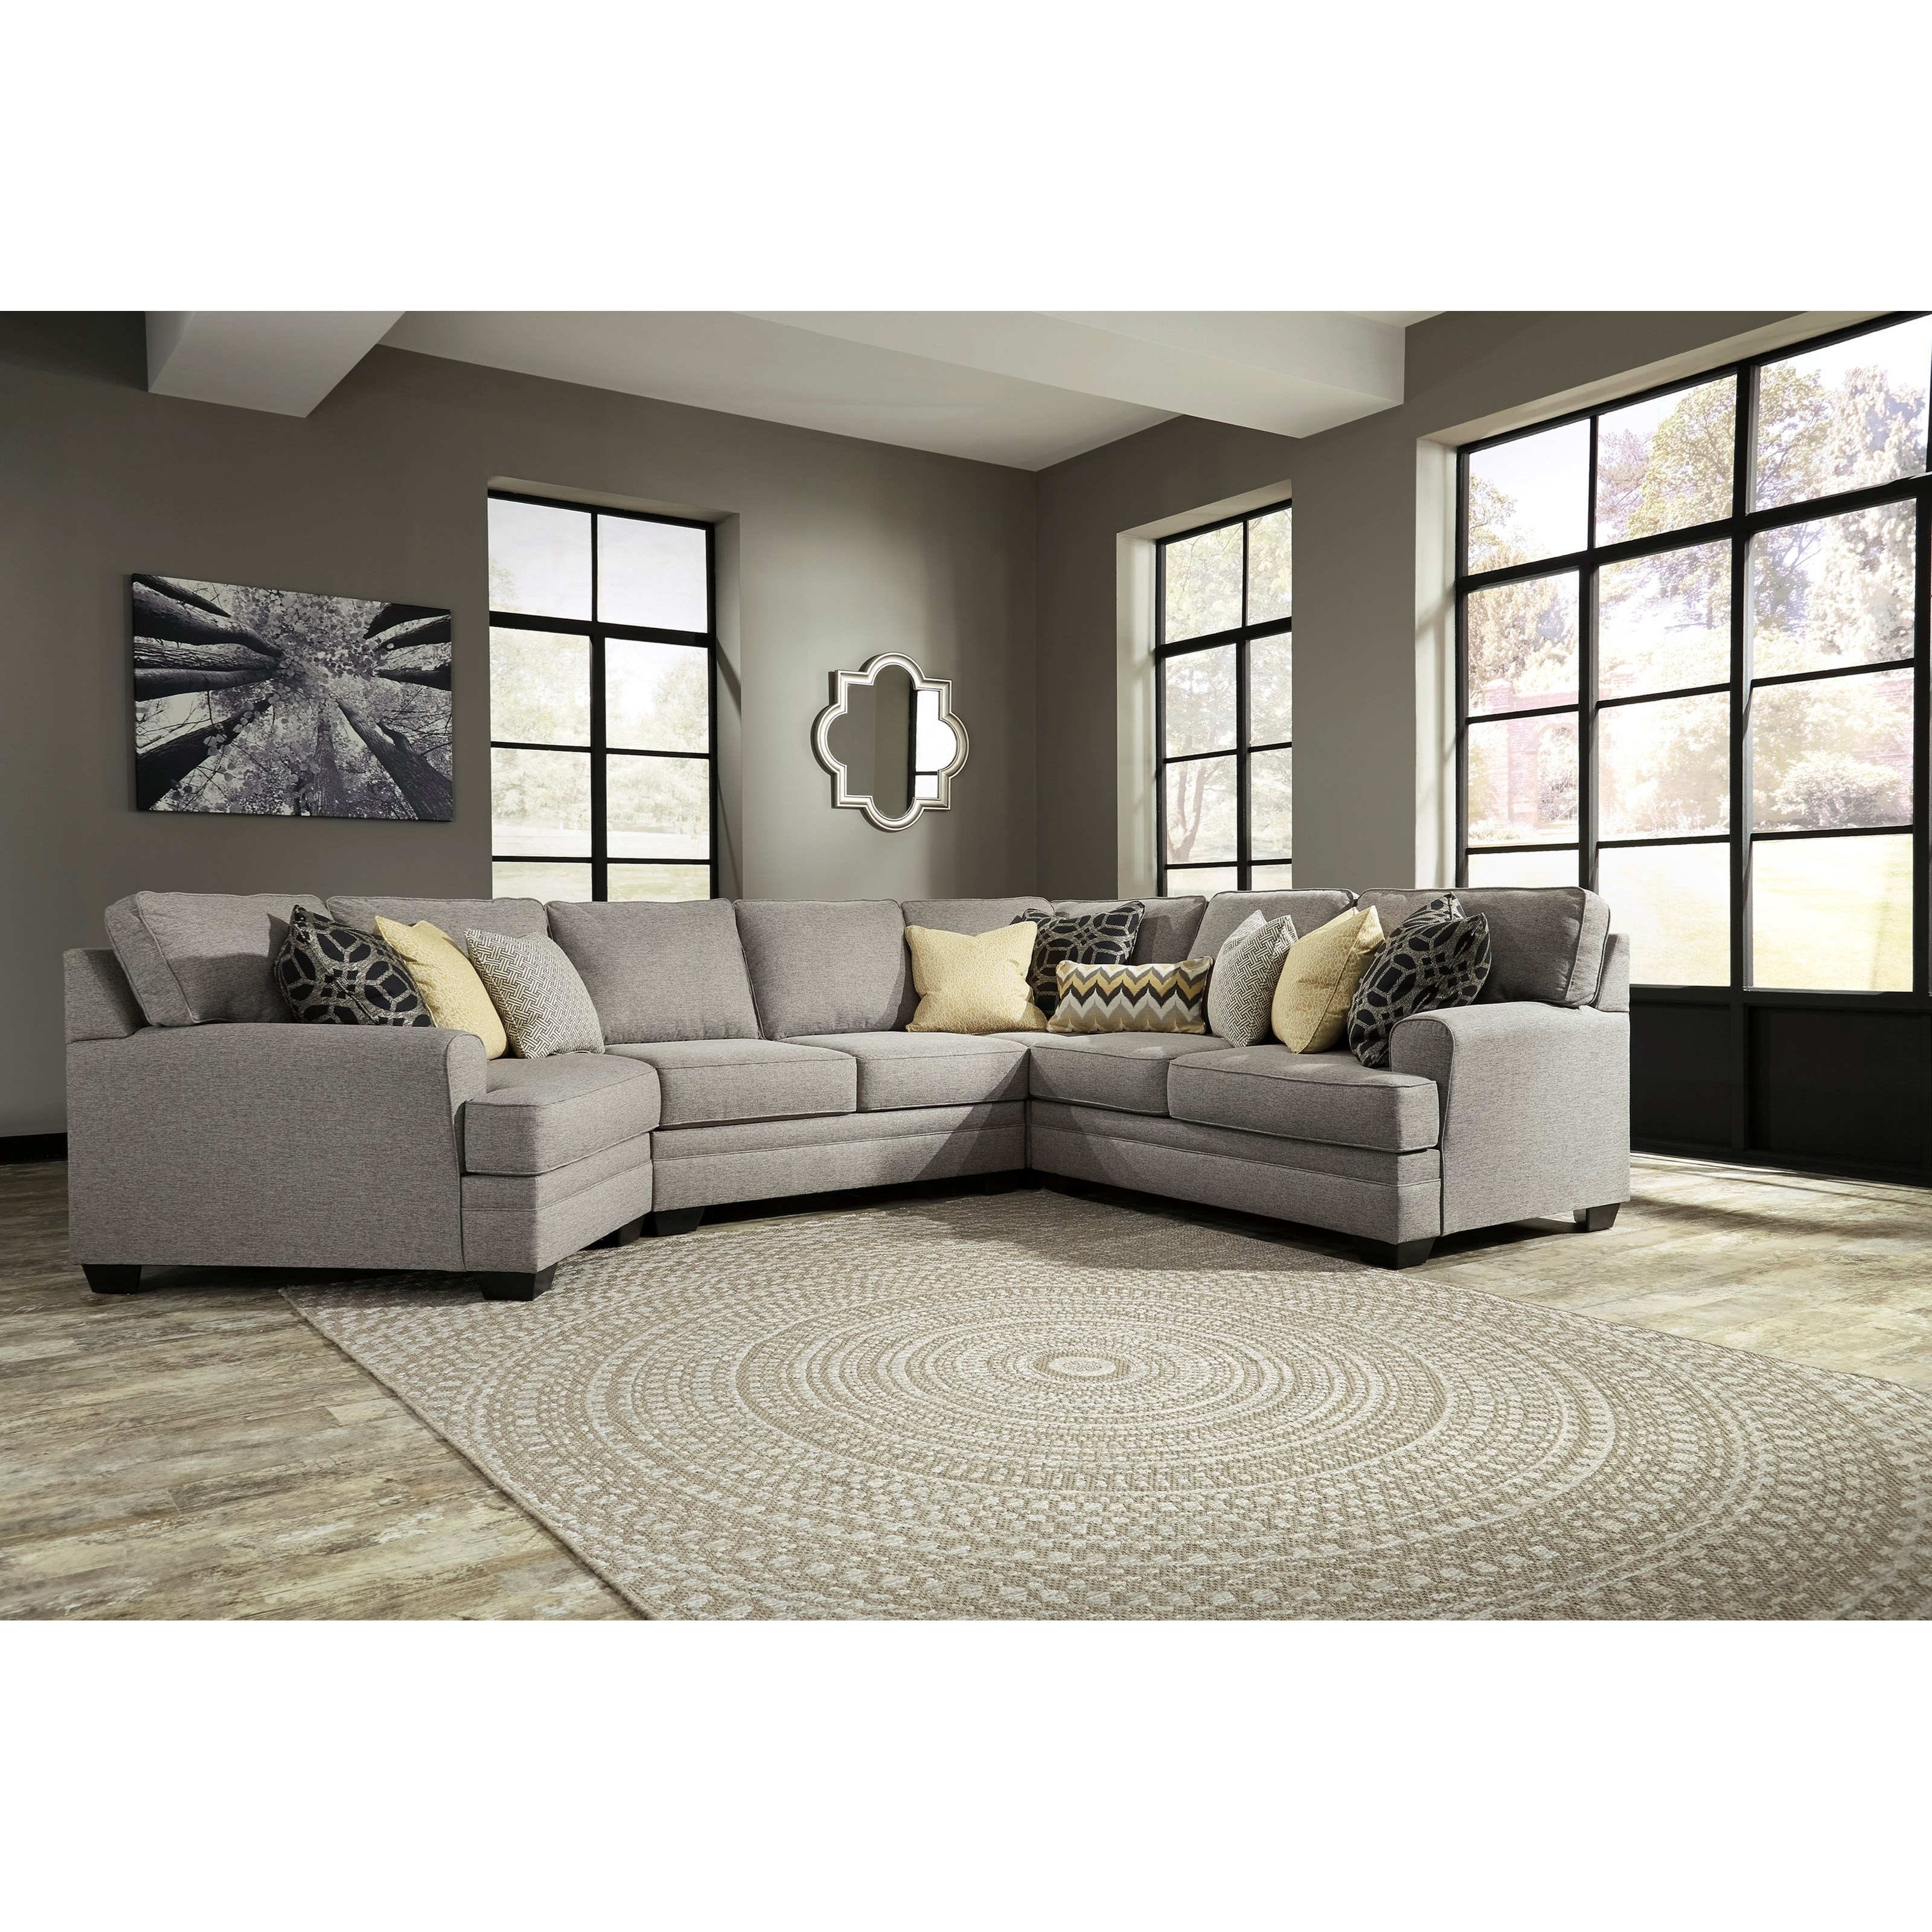 Benchcraft Cresson Contemporary 4 Piece Sectional With Cuddler Intended For Most Up To Date Cuddler Sectional Sofas (View 4 of 20)